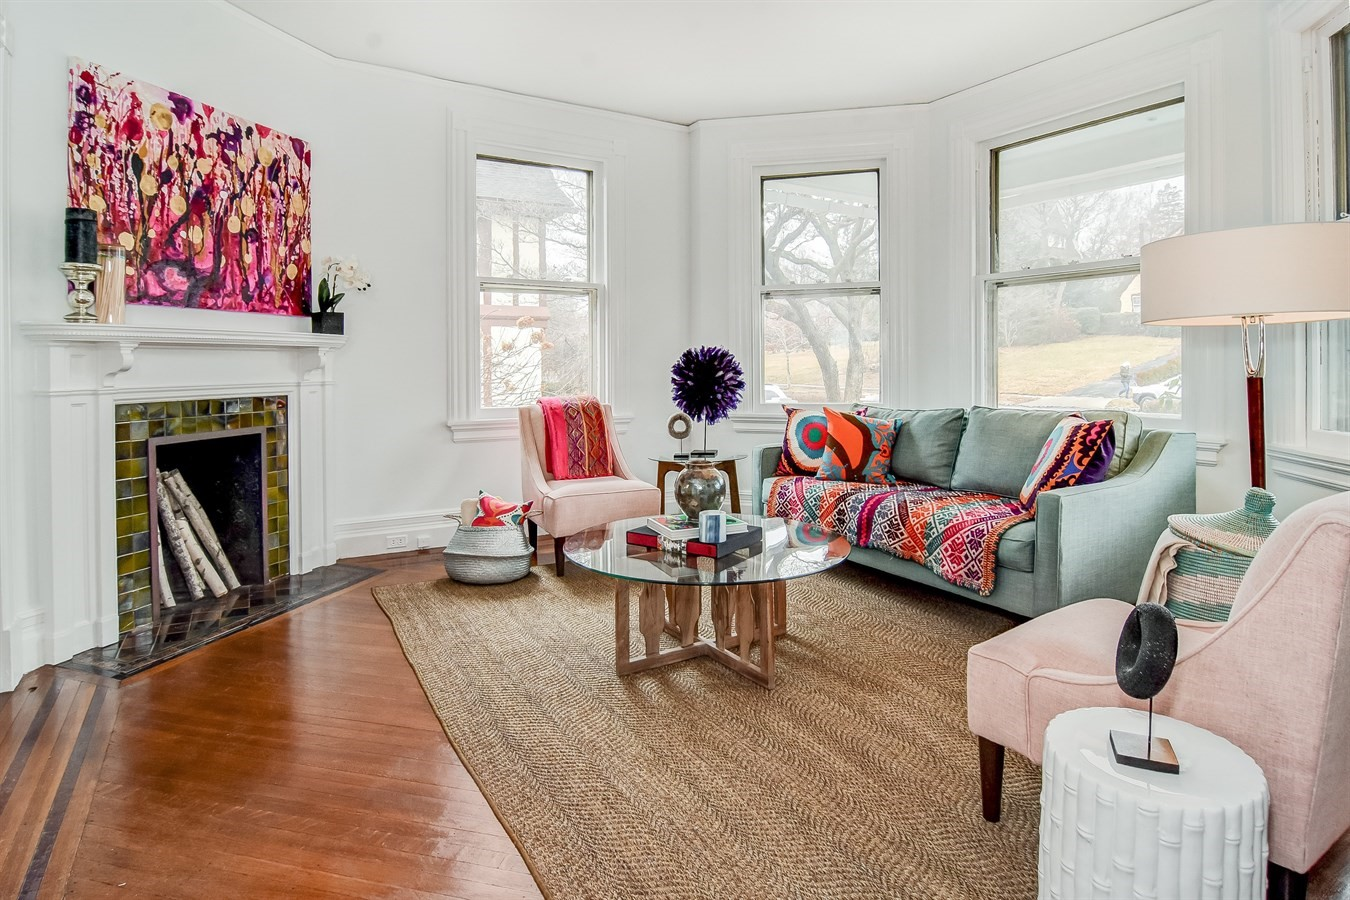 Have You Ever Been To An Open House And Found Yourself Recognizing  Furnishings Or Accessories From Another Open House? It Happens More Than  You Think, ...